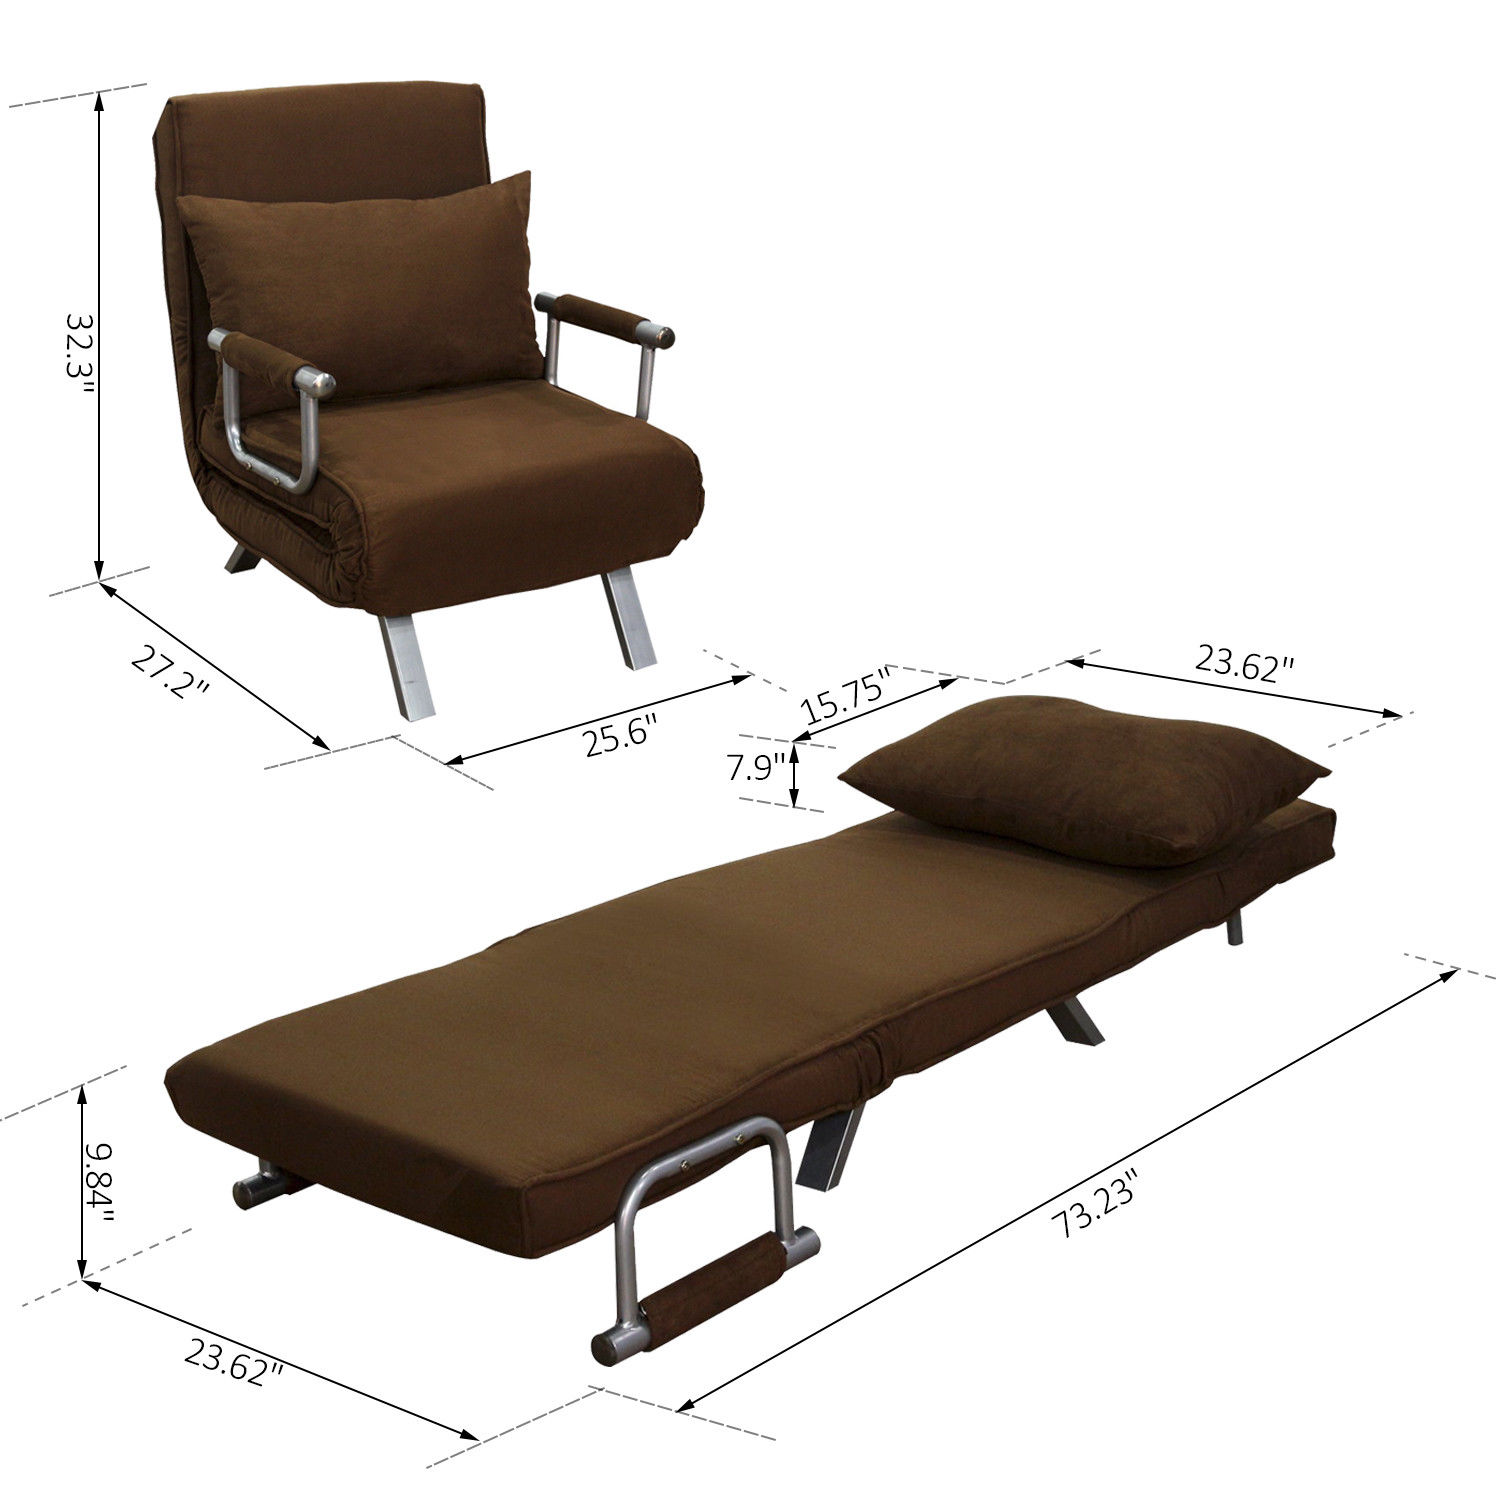 Details About Convertible Single Sleeper Sofa Bed Recliner Lounger W Pillow Folding Brown